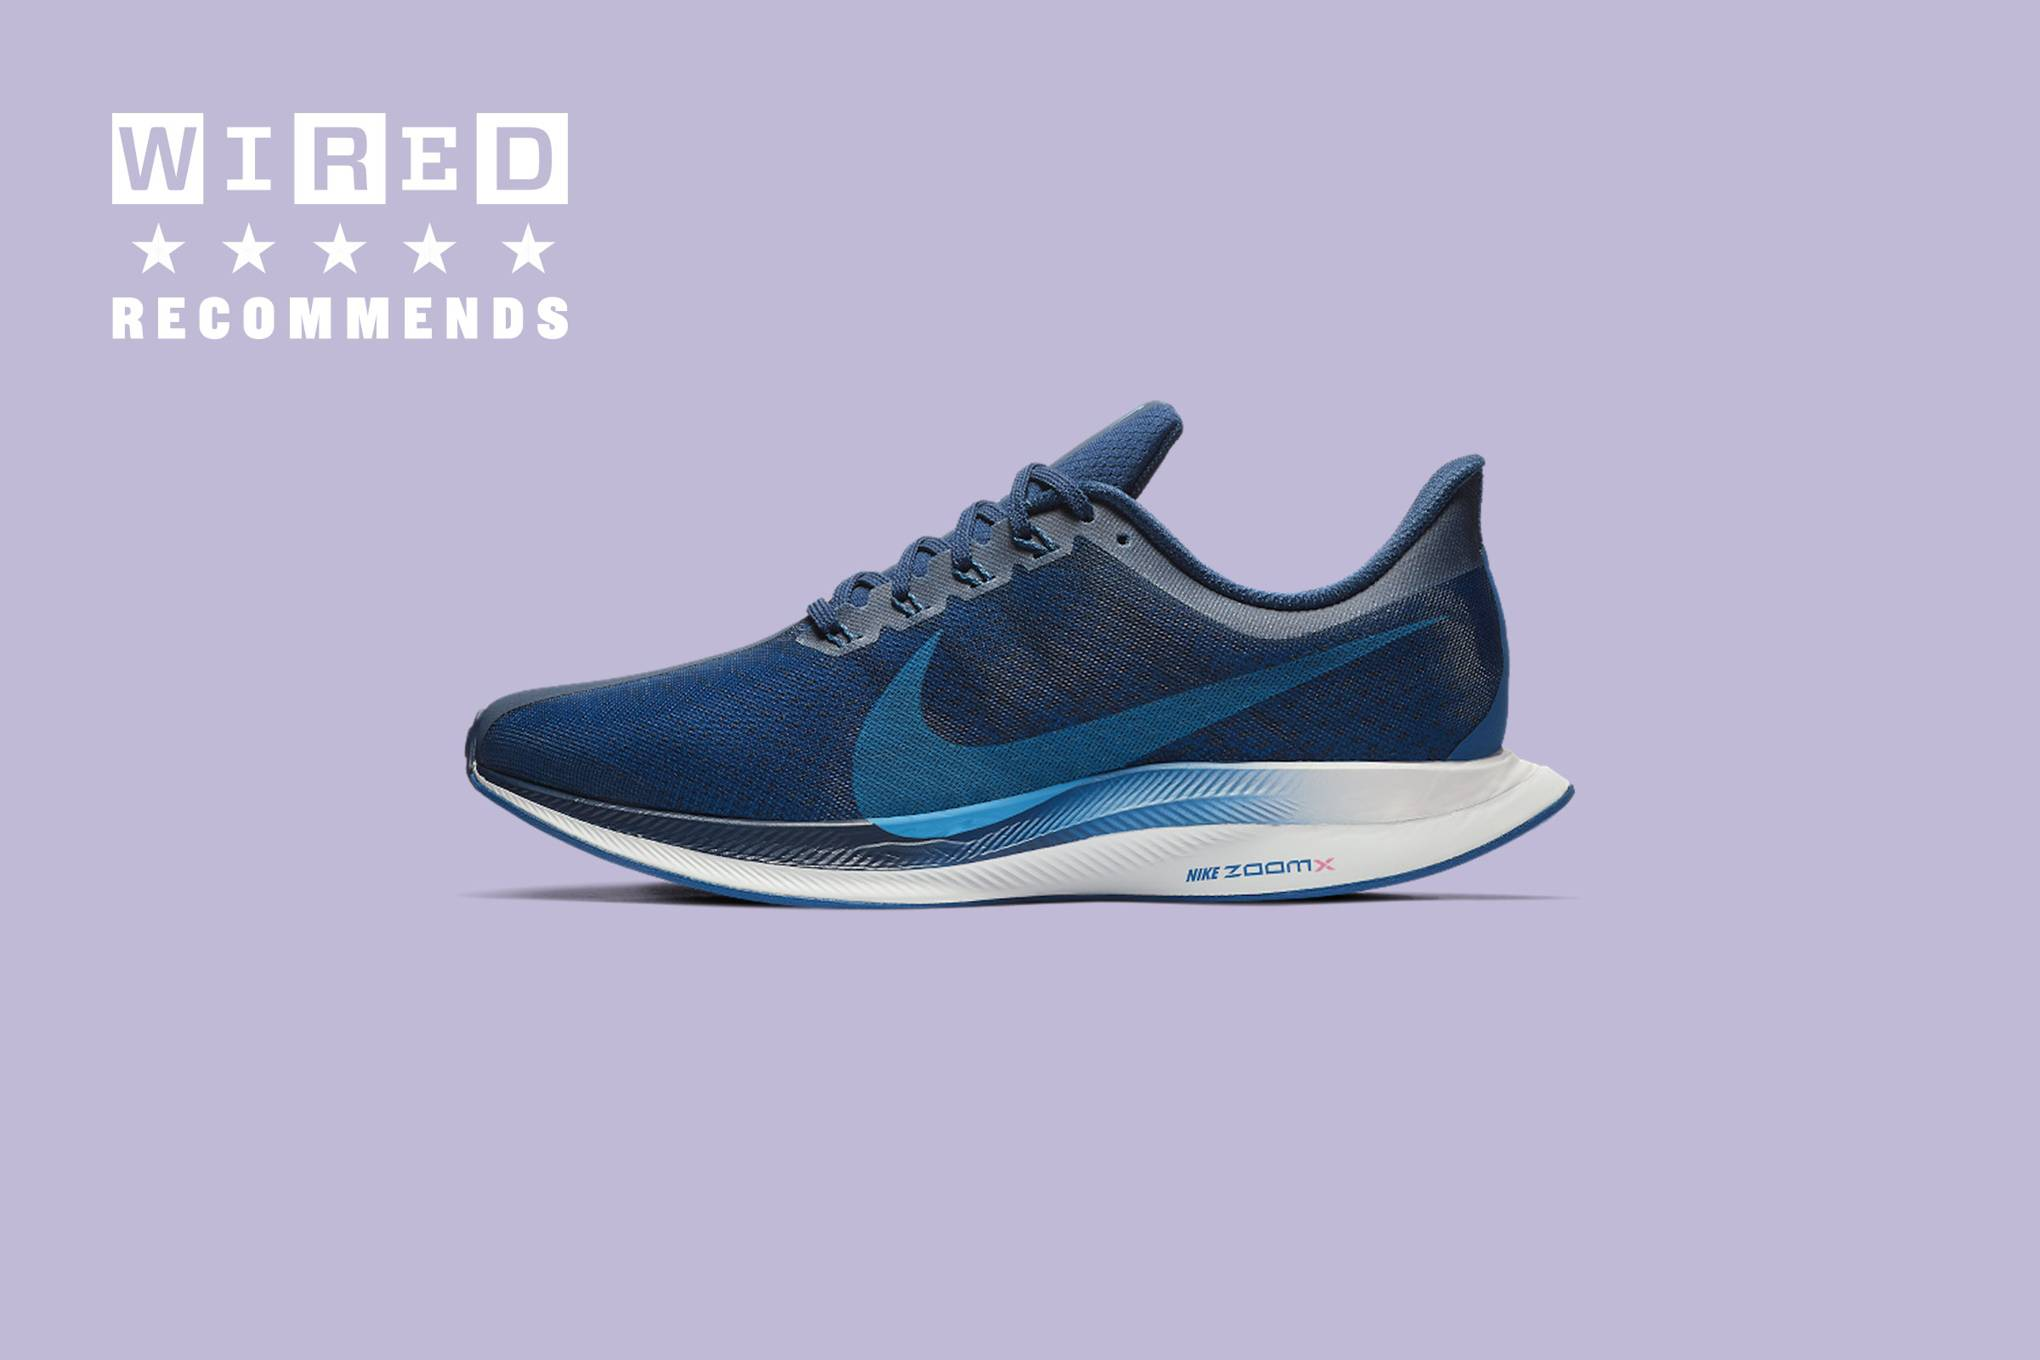 6f3c9ba025 The best running shoes you can buy in 2019 | WIRED UK